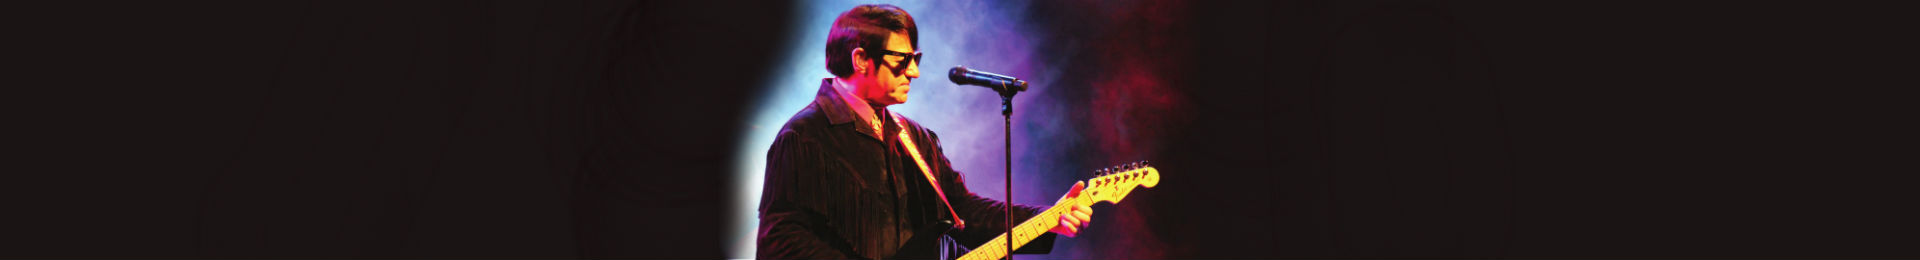 The Roy Orbison Story banner image